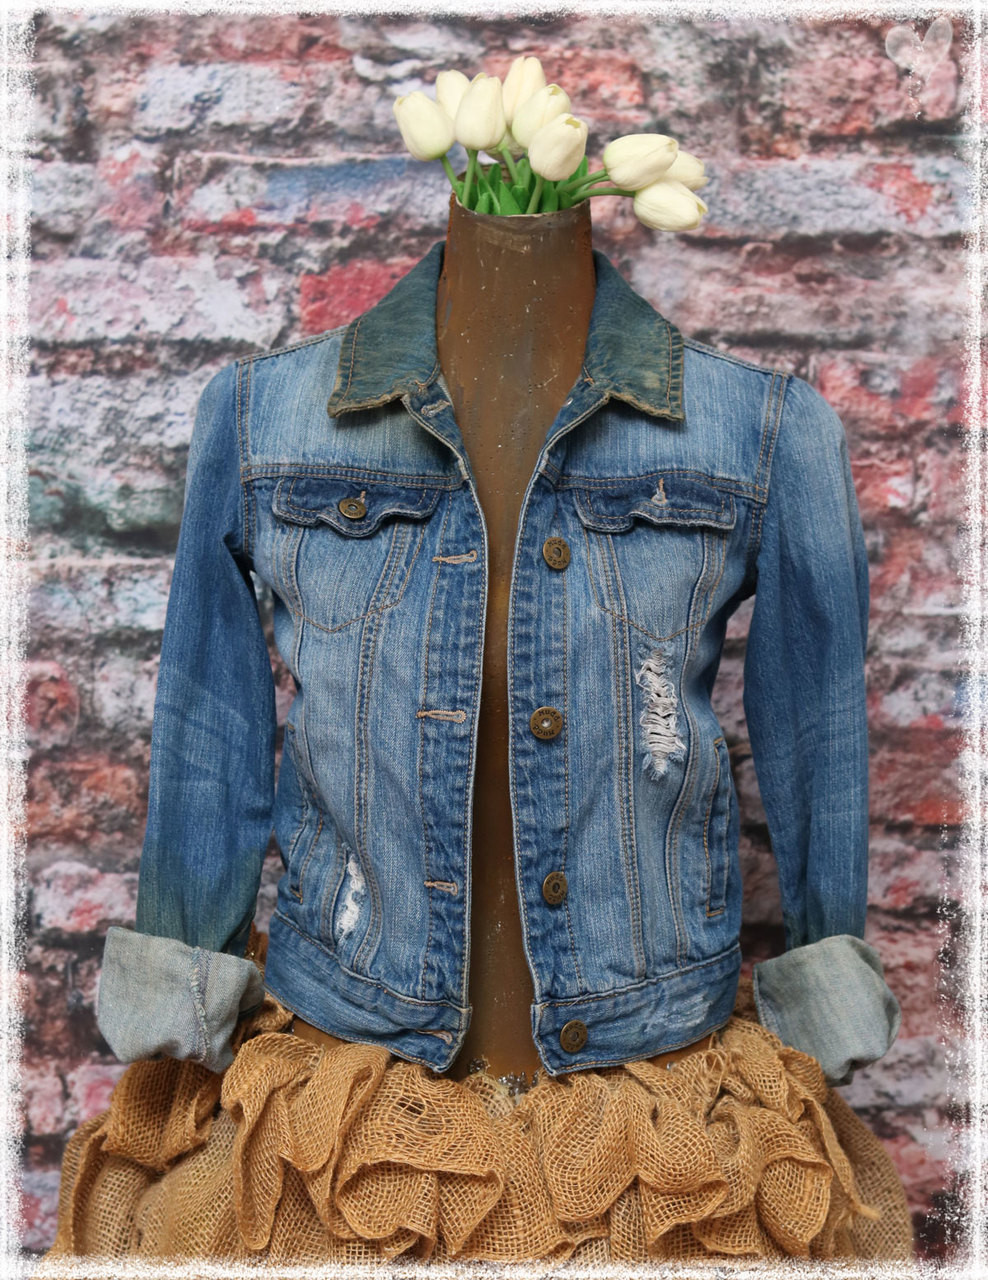 Repurposed Flag Denim Jacket by Dang Chicks Artisans